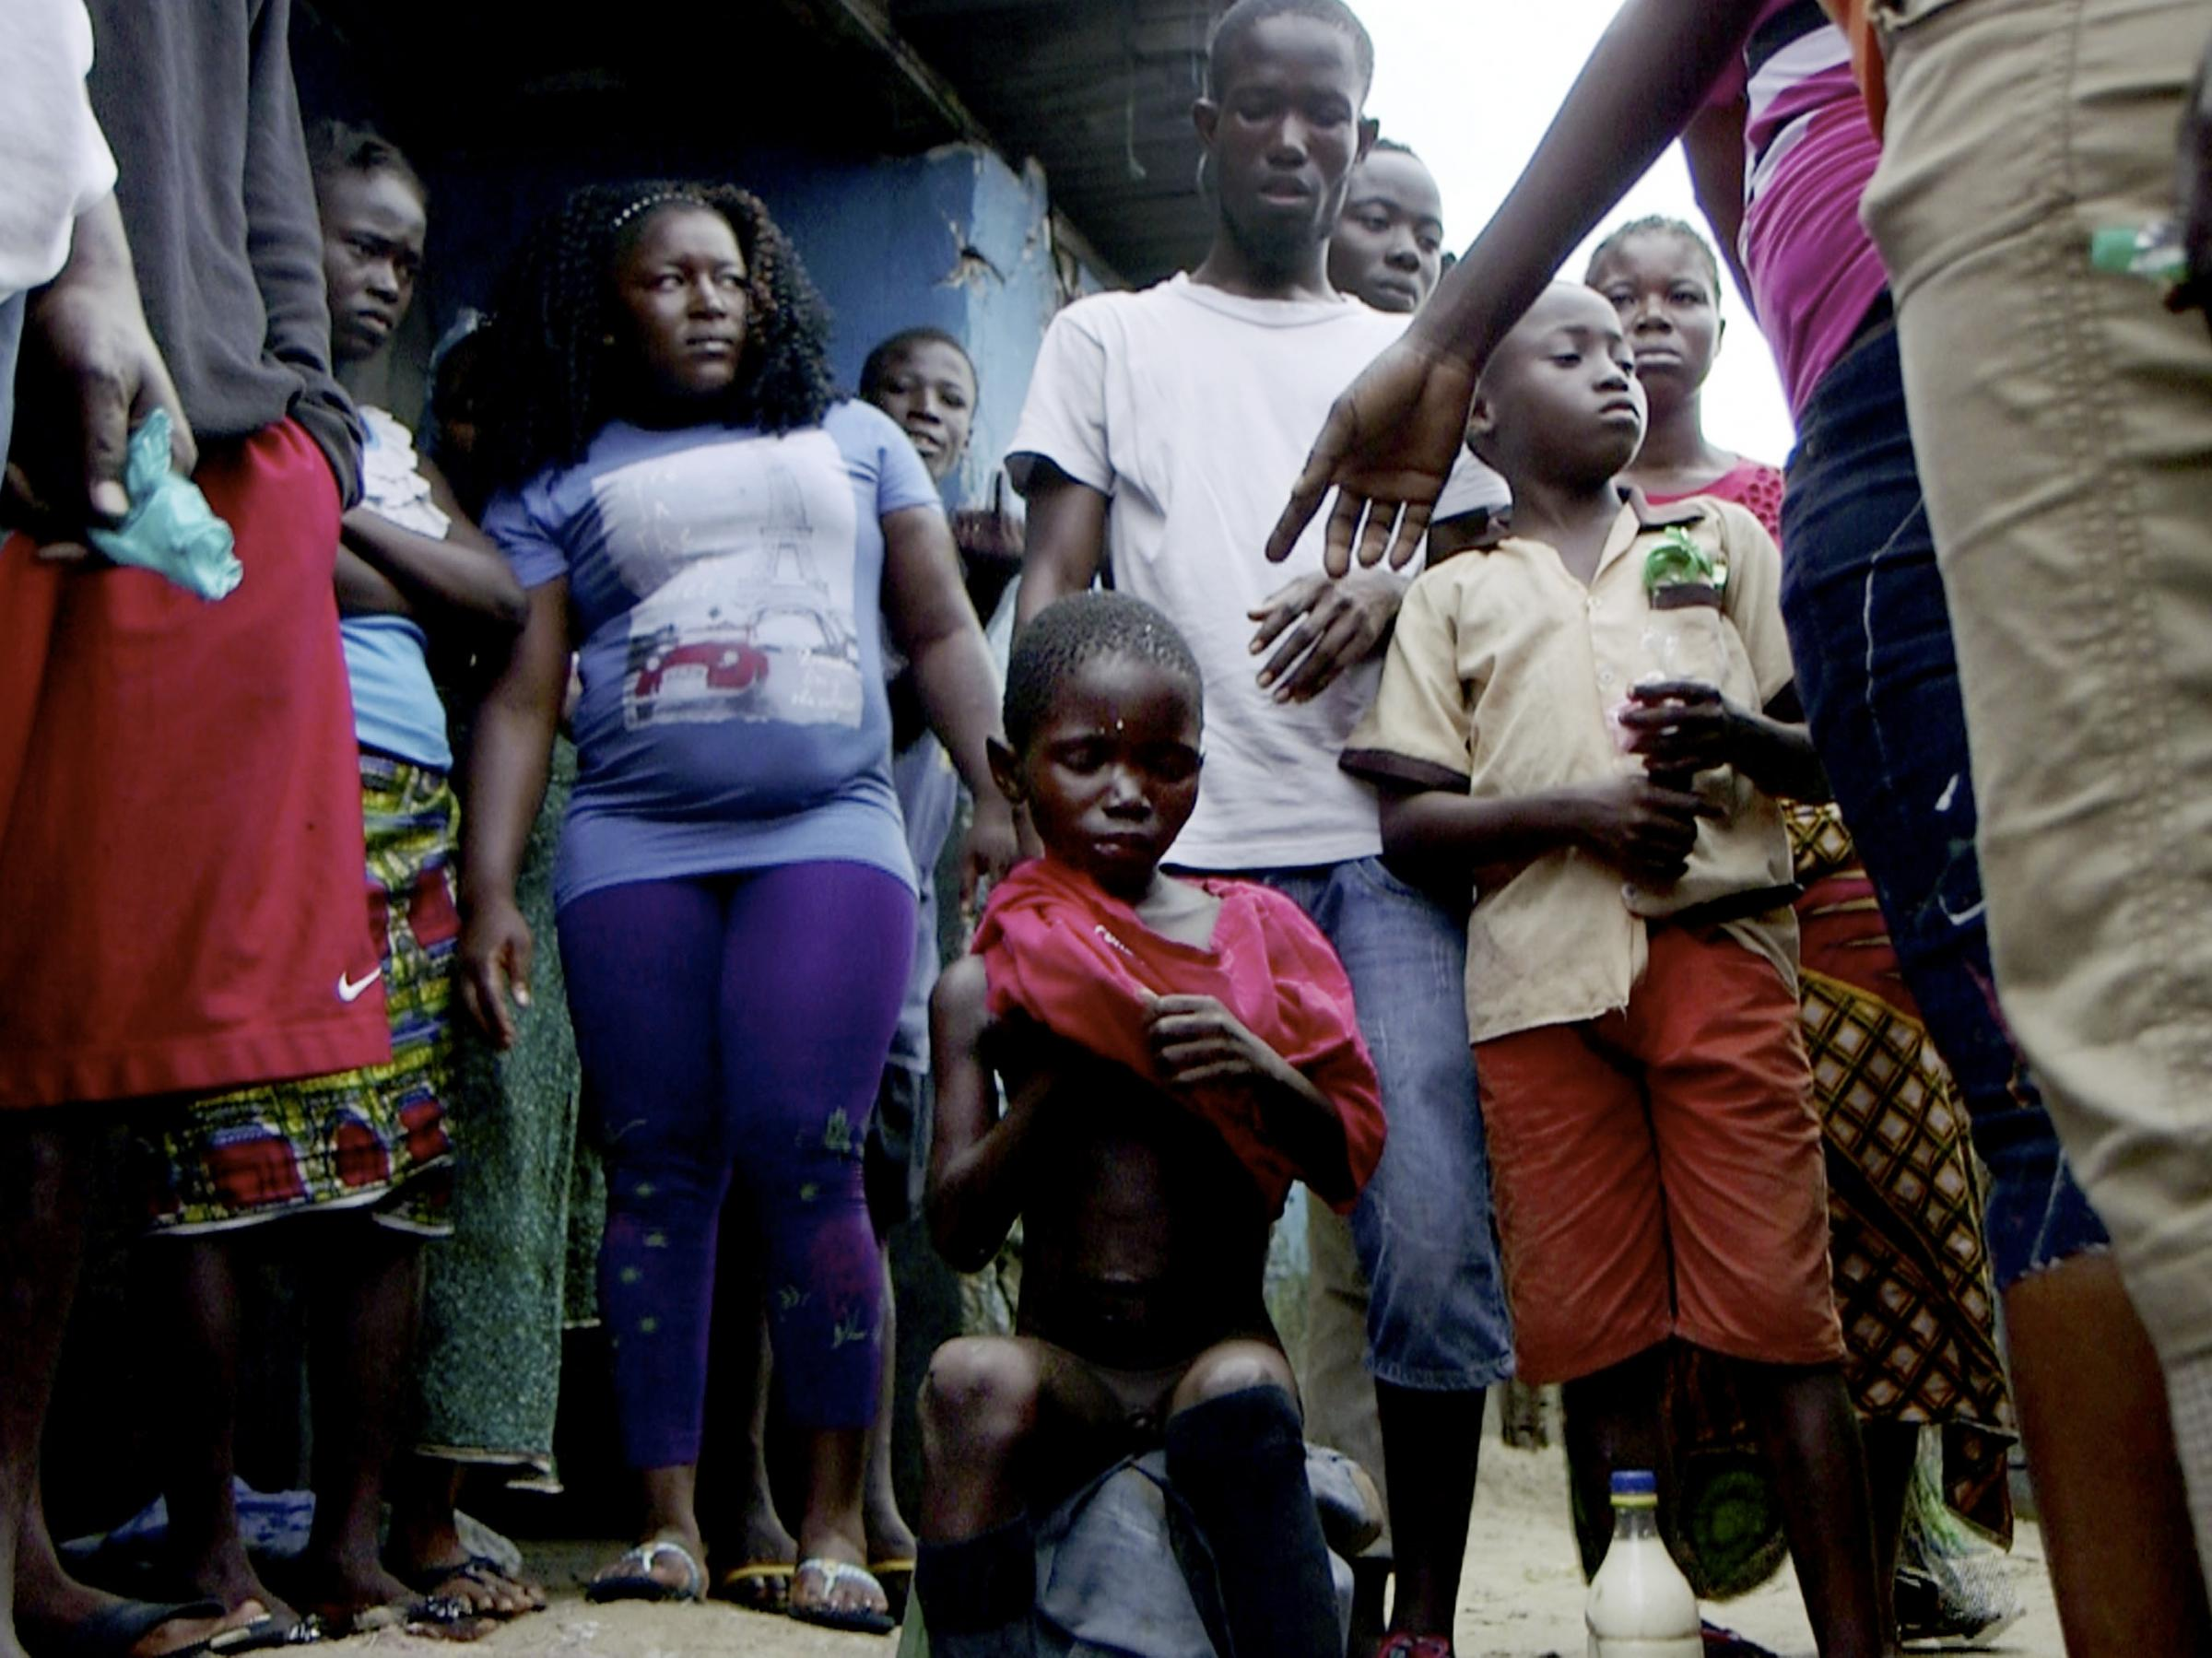 The 10-Year-Old Boy Has Died, Probably Of Ebola